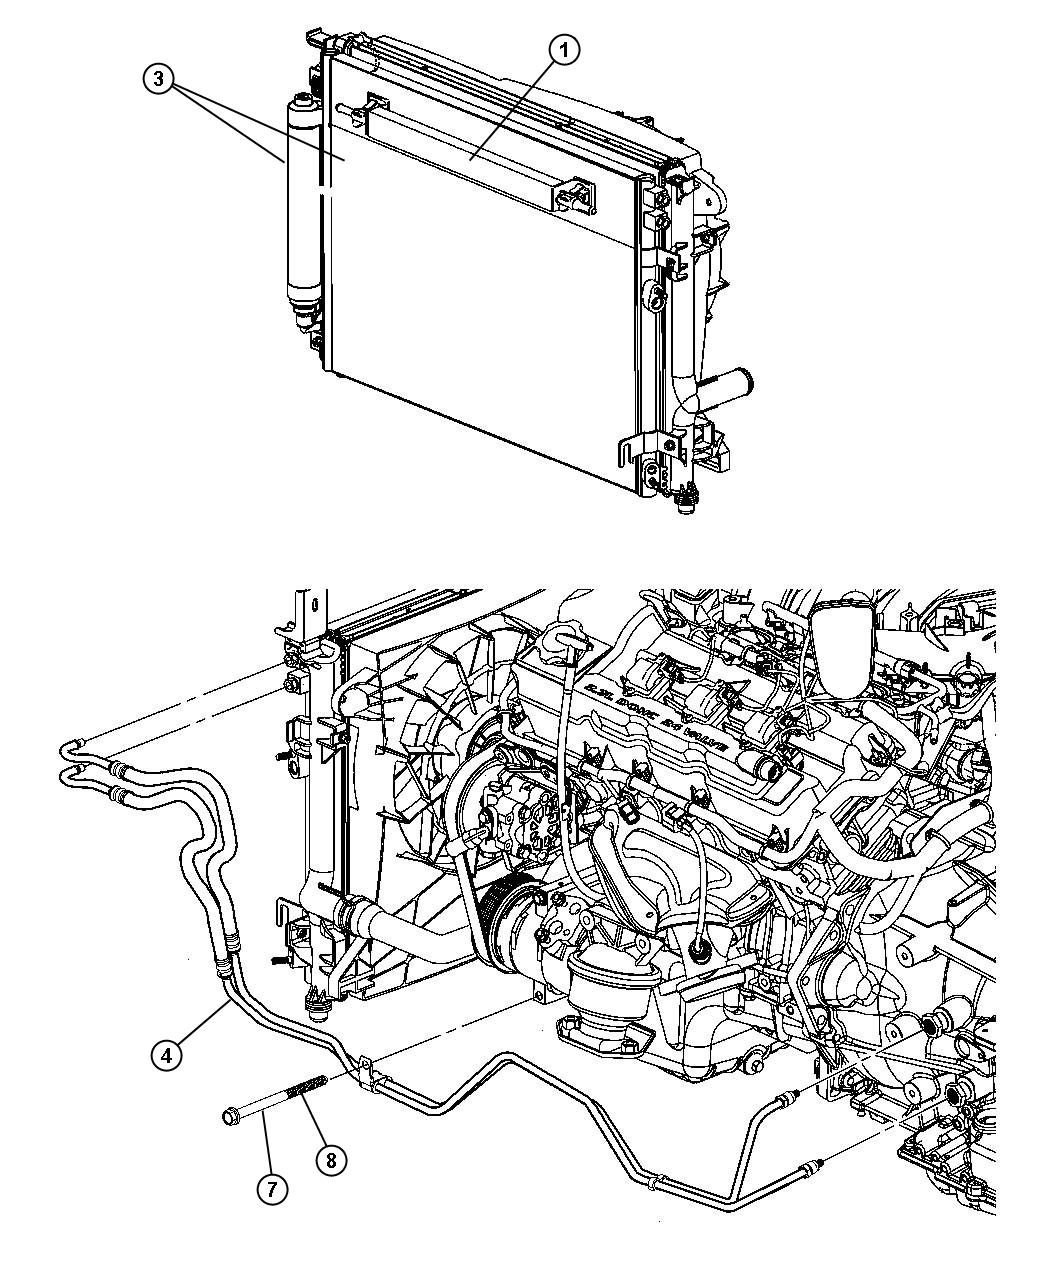 2000 jeep grand cherokee wiring harness with Dodge Magnum 5 7 Engine Diagram on Dodge Speakers Wiring Diagram in addition Kia Optima Fuse Location in addition 2014 10 01 archive furthermore 1997 Infiniti Qx4 Wiring Diagram And Electrical System Service And Troubleshooting furthermore 2008 Jeep  mander Starter Location.